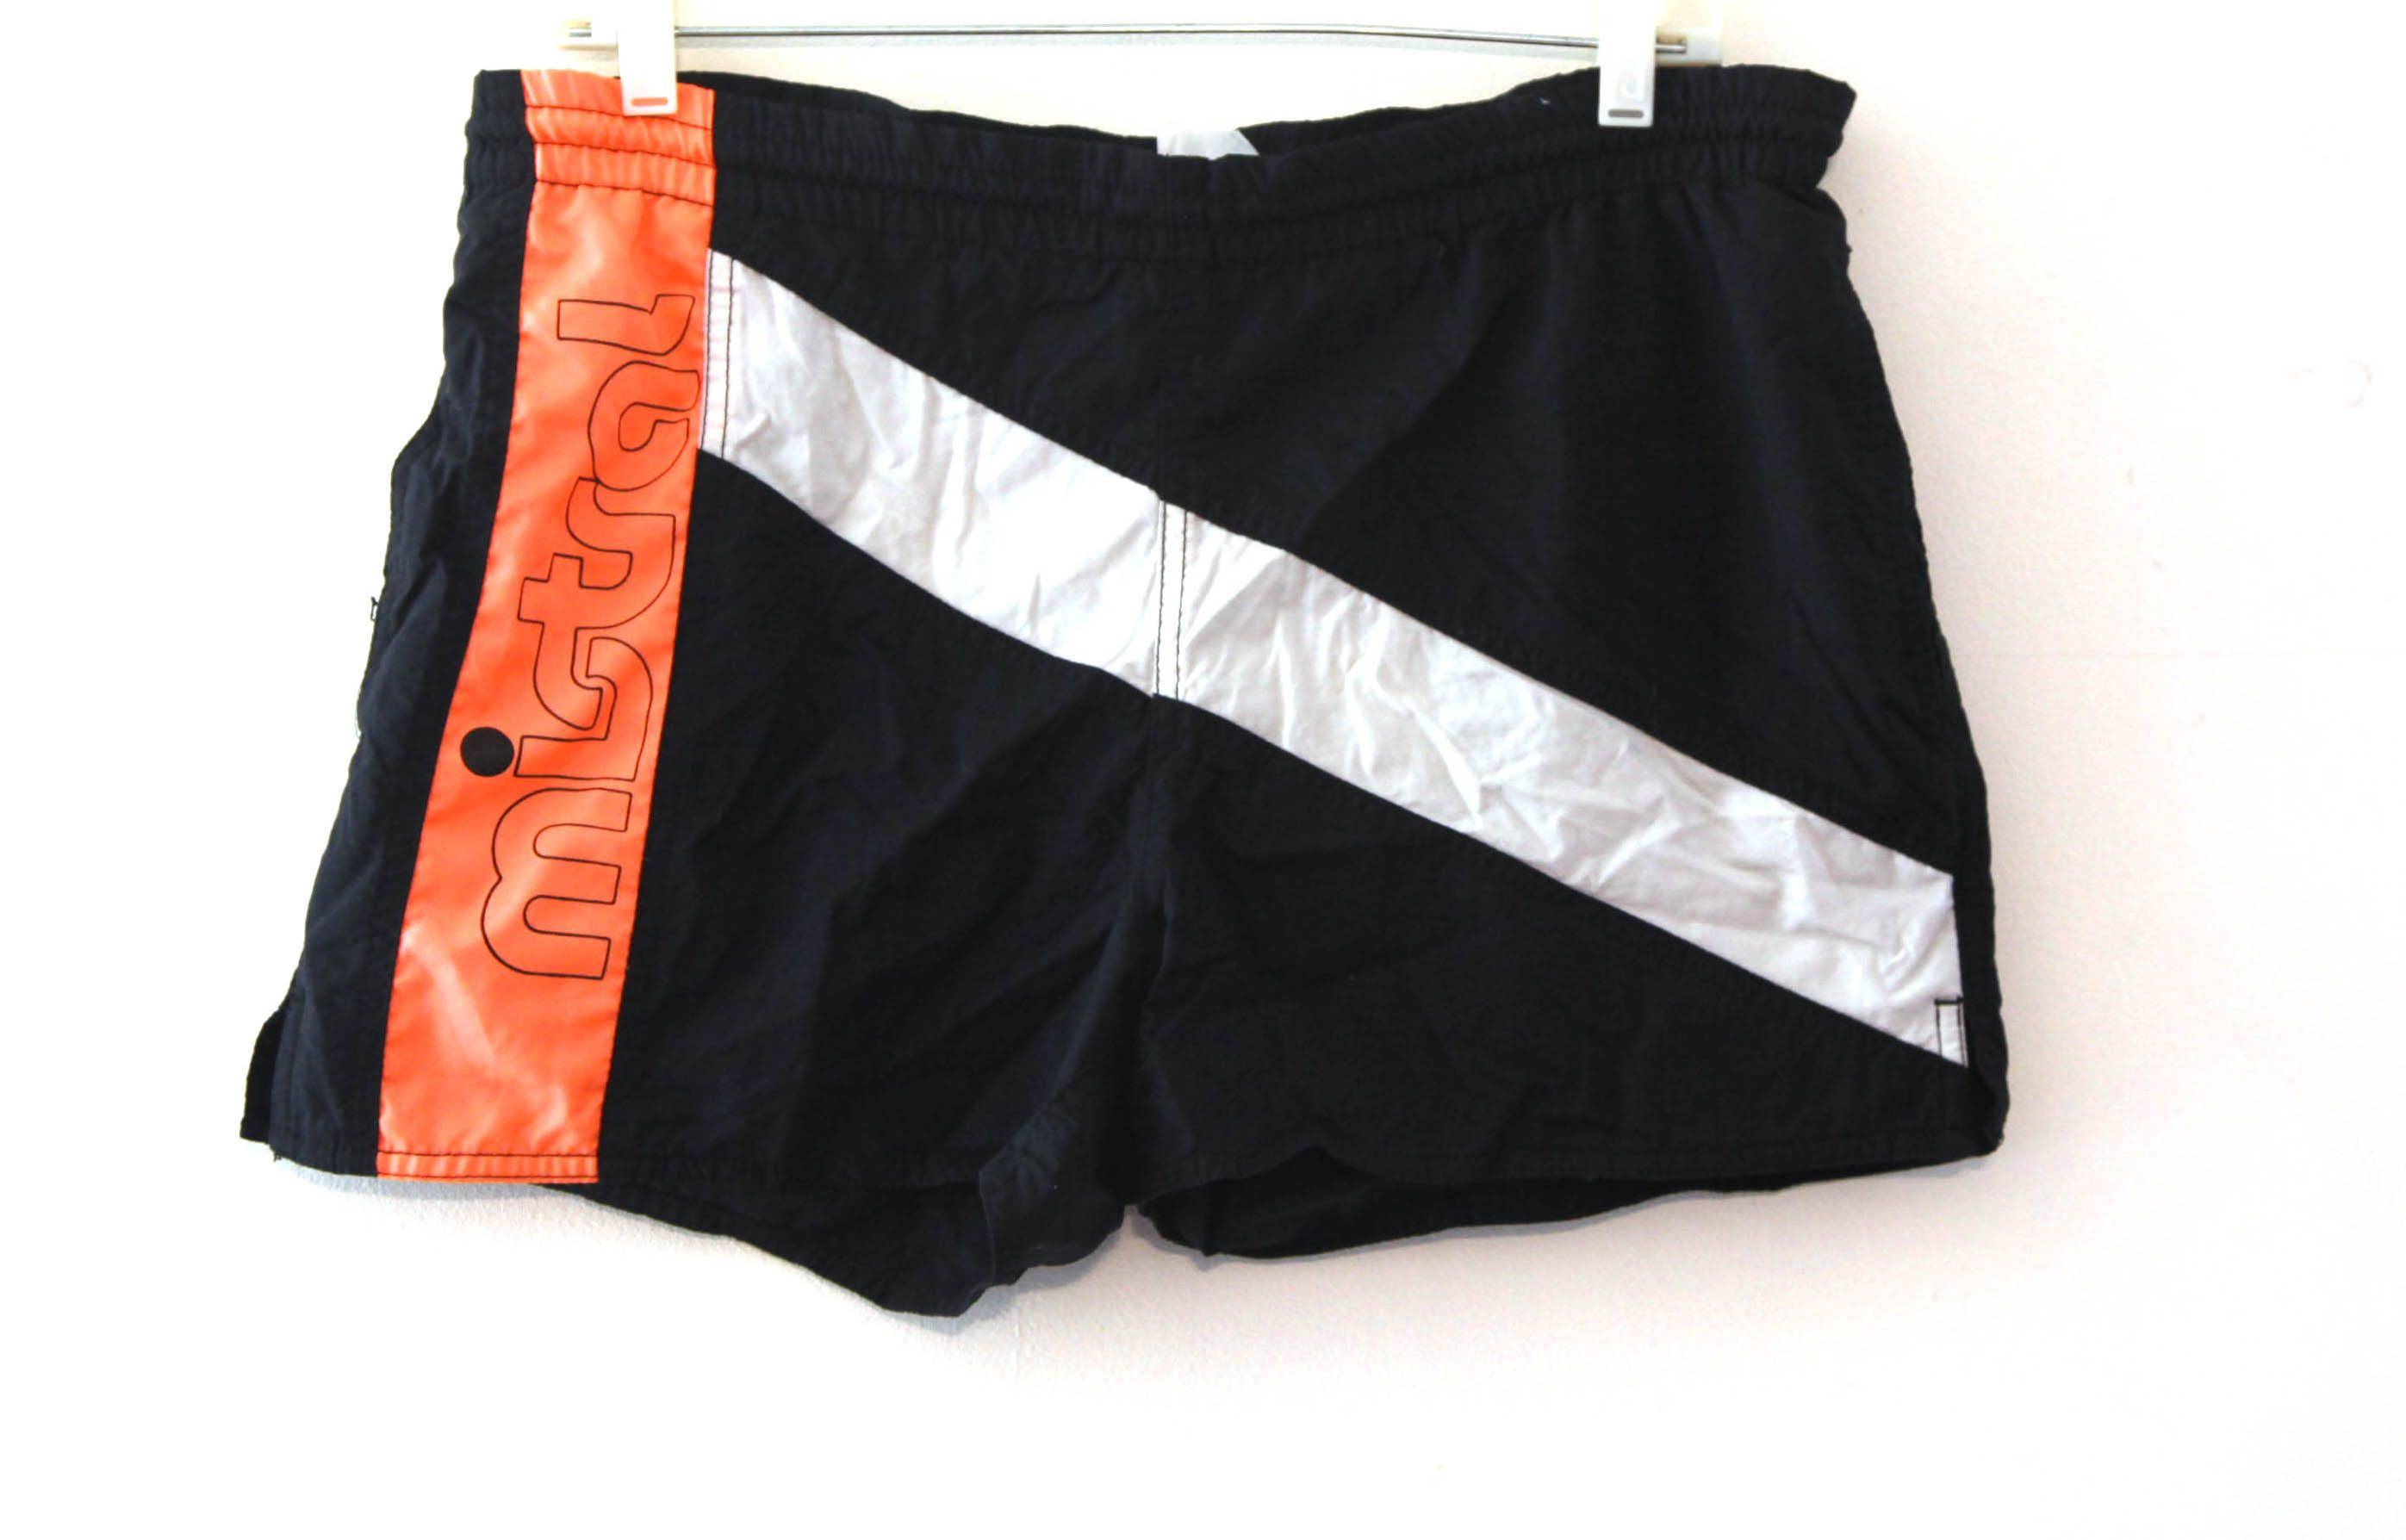 e6eb3f76b2 Vintage 80s shorts swim trunks mistral color block black neon orange by  216vintageModern on Etsy